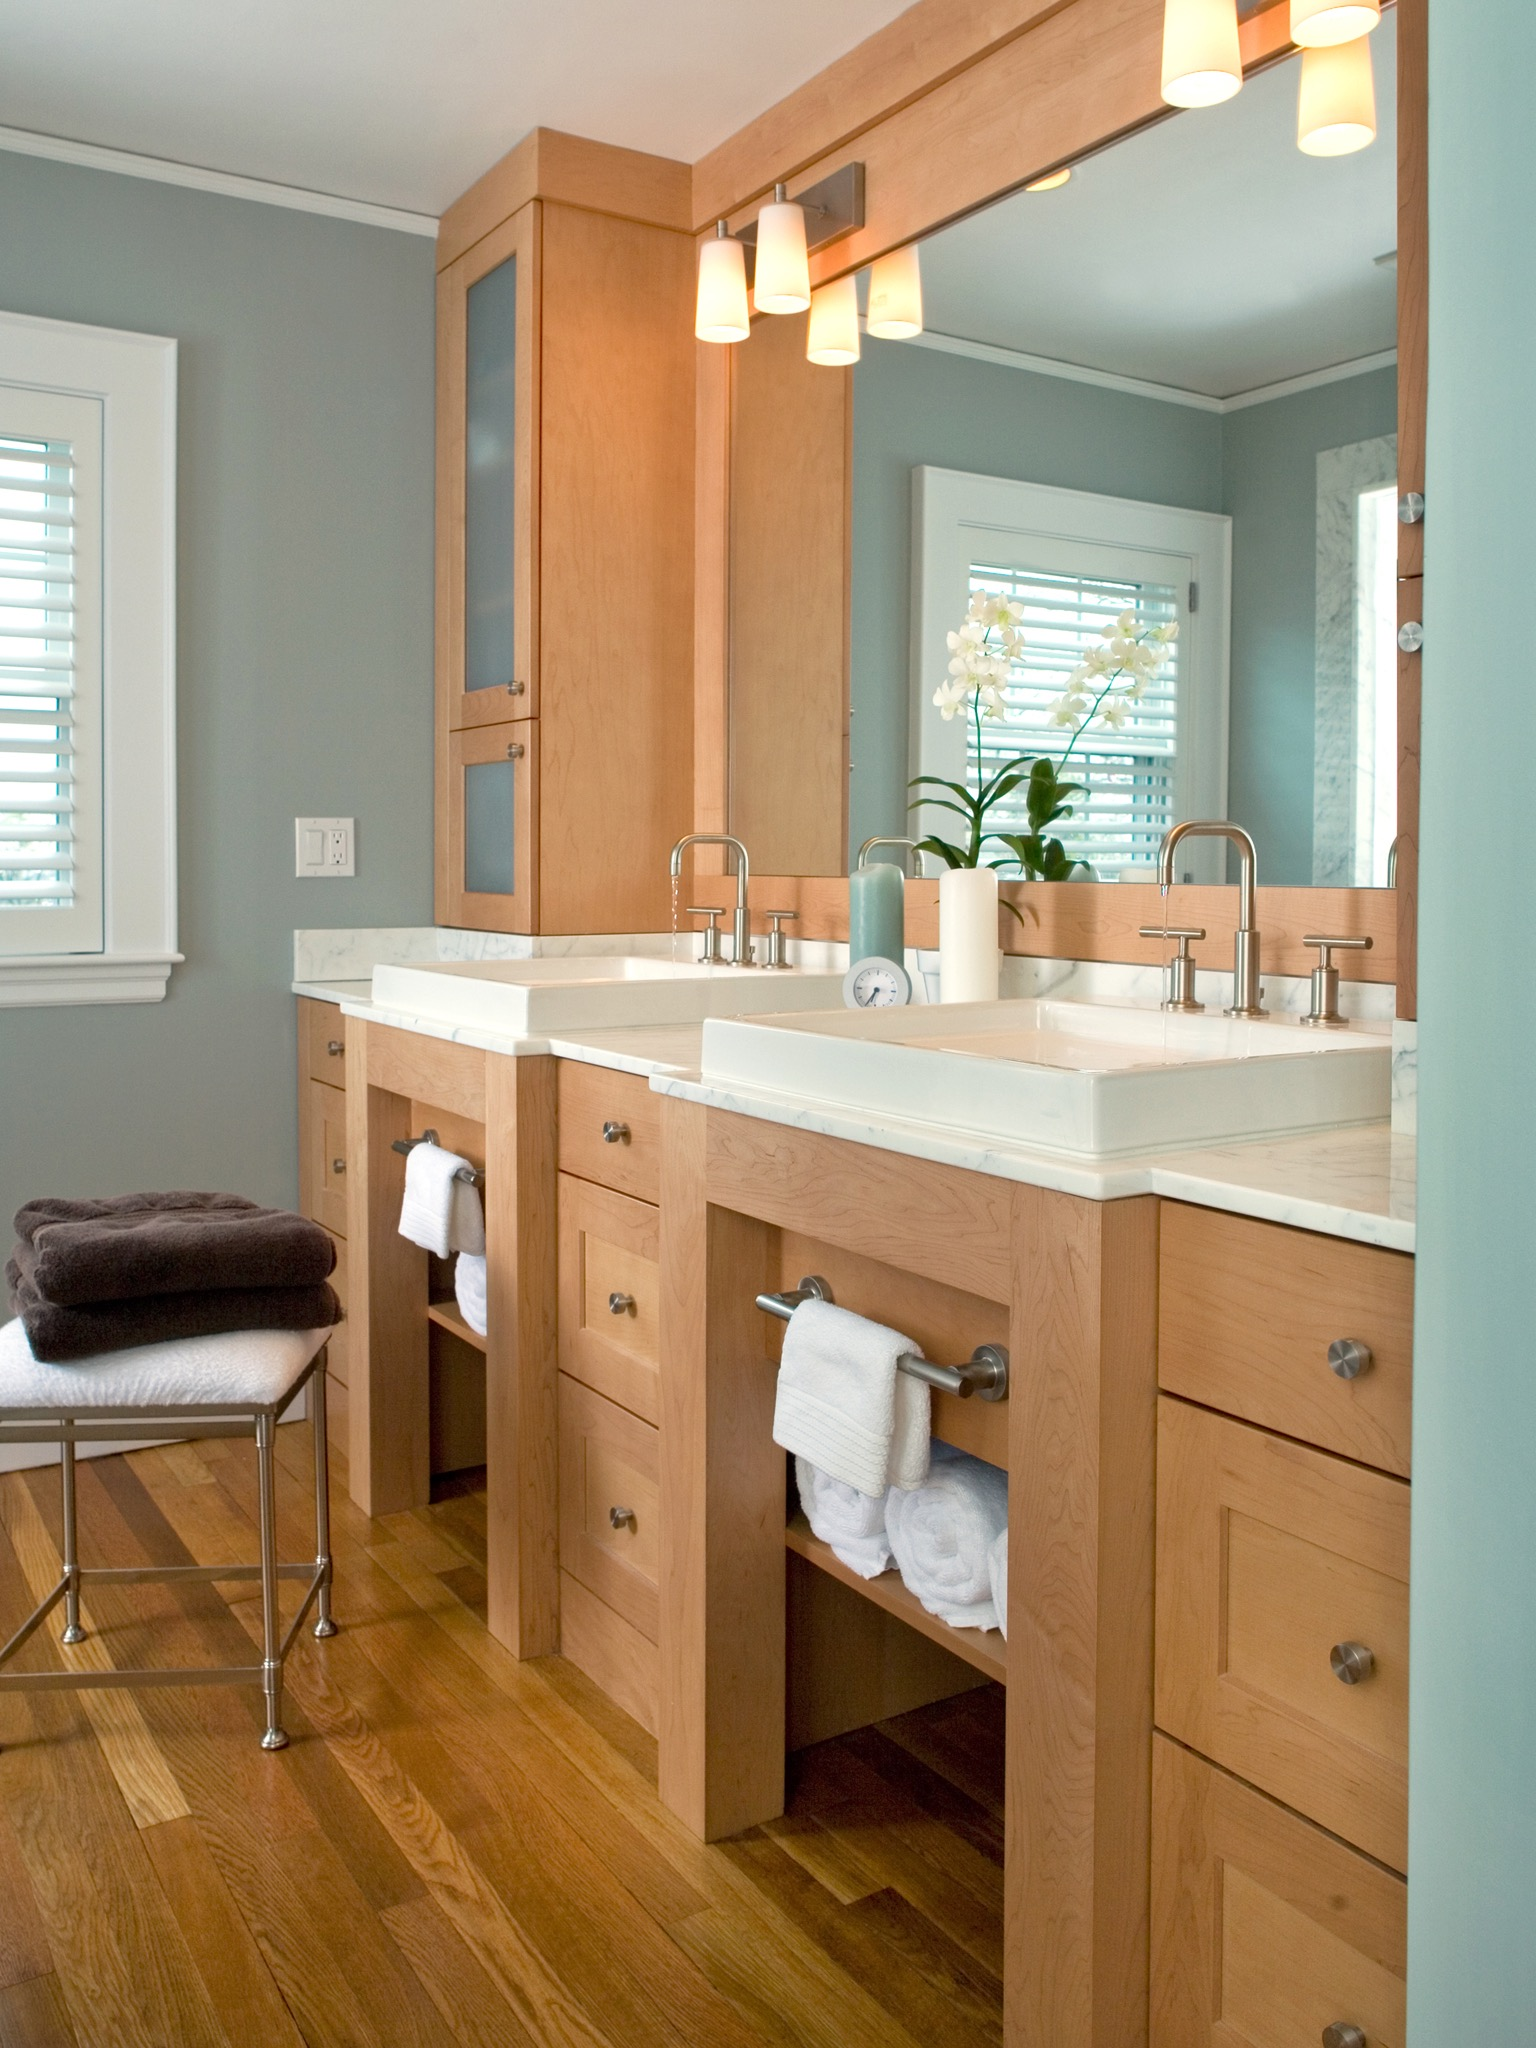 2017 Contemporary Blue Double Vanity Bathroom Furniture (View 4 of 18)